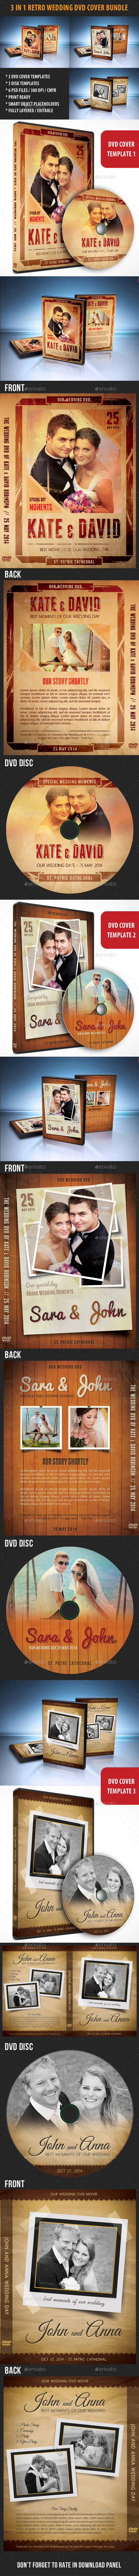 3 in 1 Retro Wedding DVD Cover Bundle